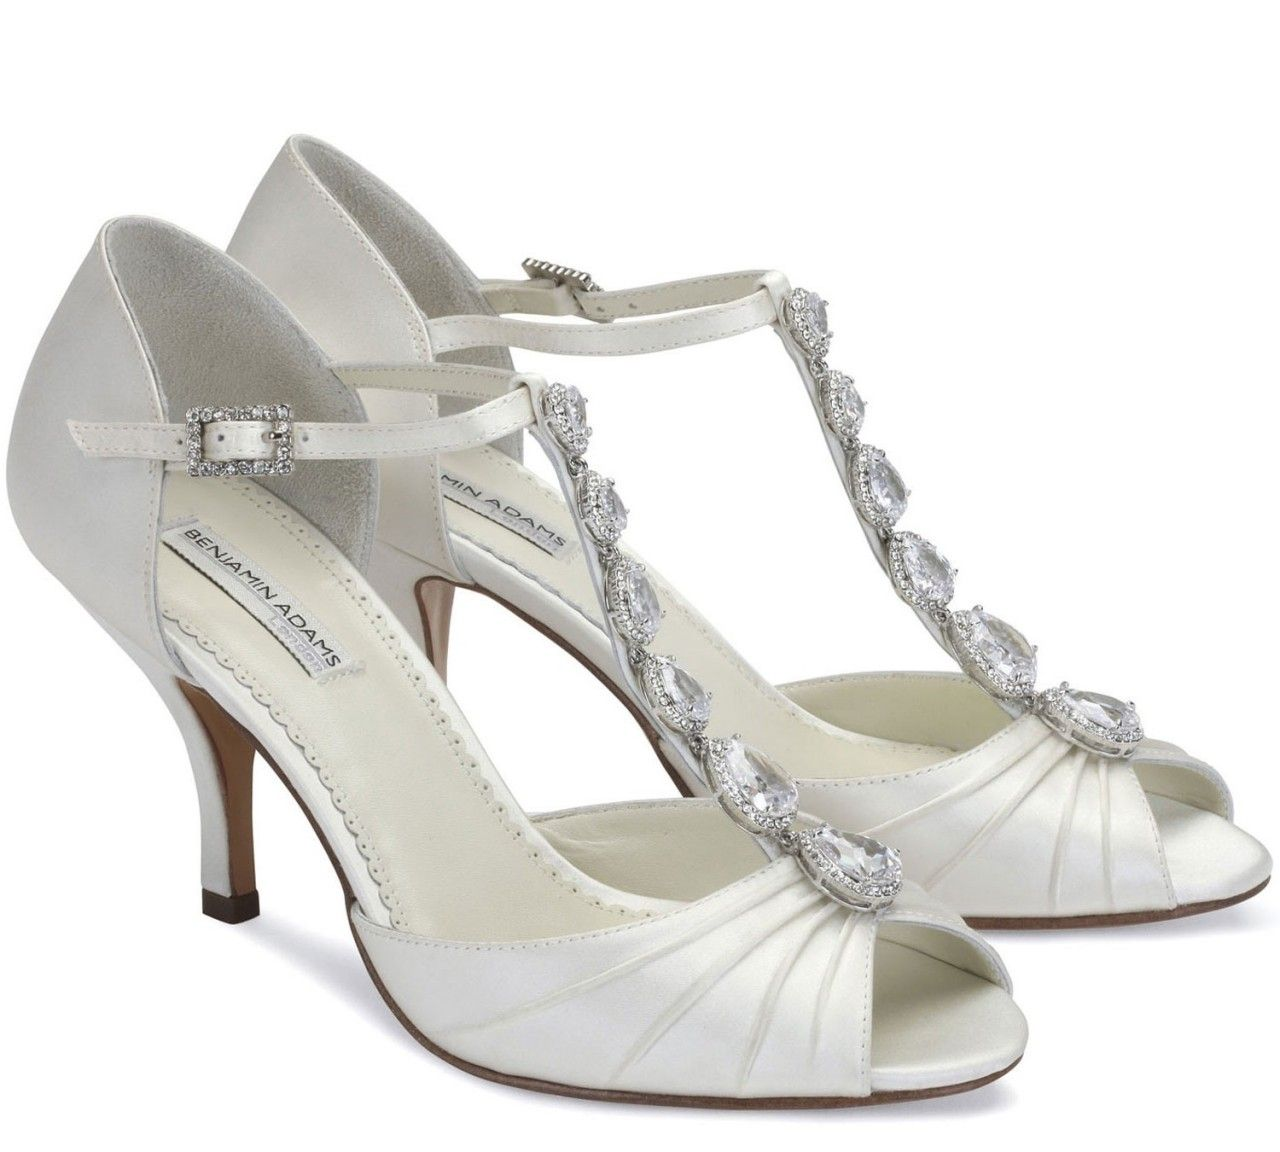 3 Inch Heel Wedding Shoes Benjamin Adams Mia